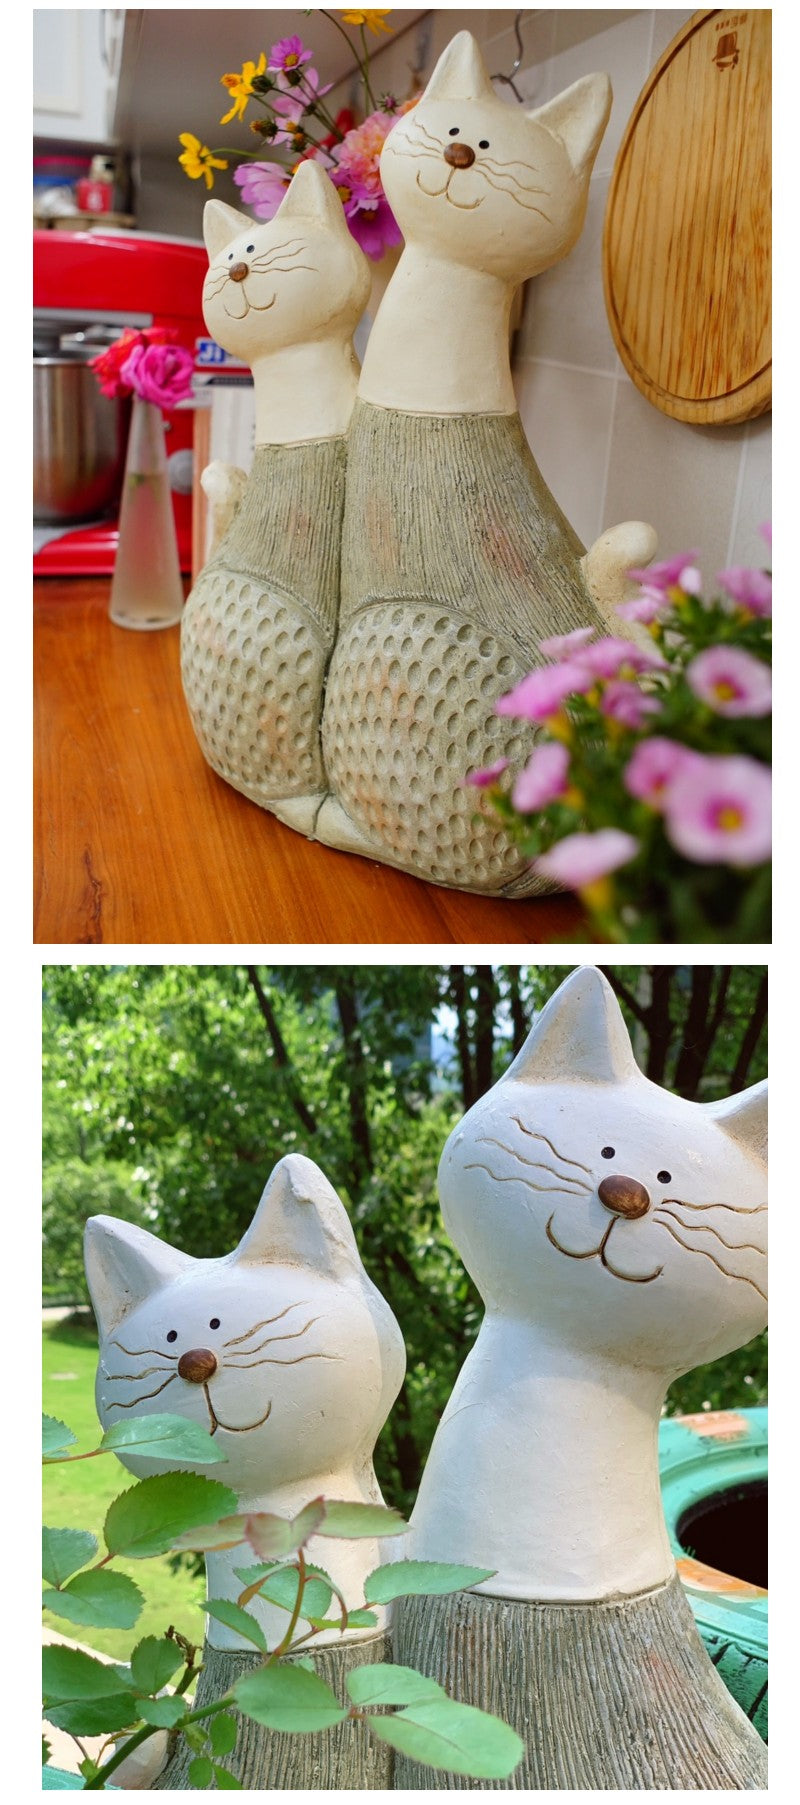 Large Lovely Cats Statue for Garden, Animal Statue for Garden Courtyard Ornament, Villa Outdoor Decor Gardening Ideas